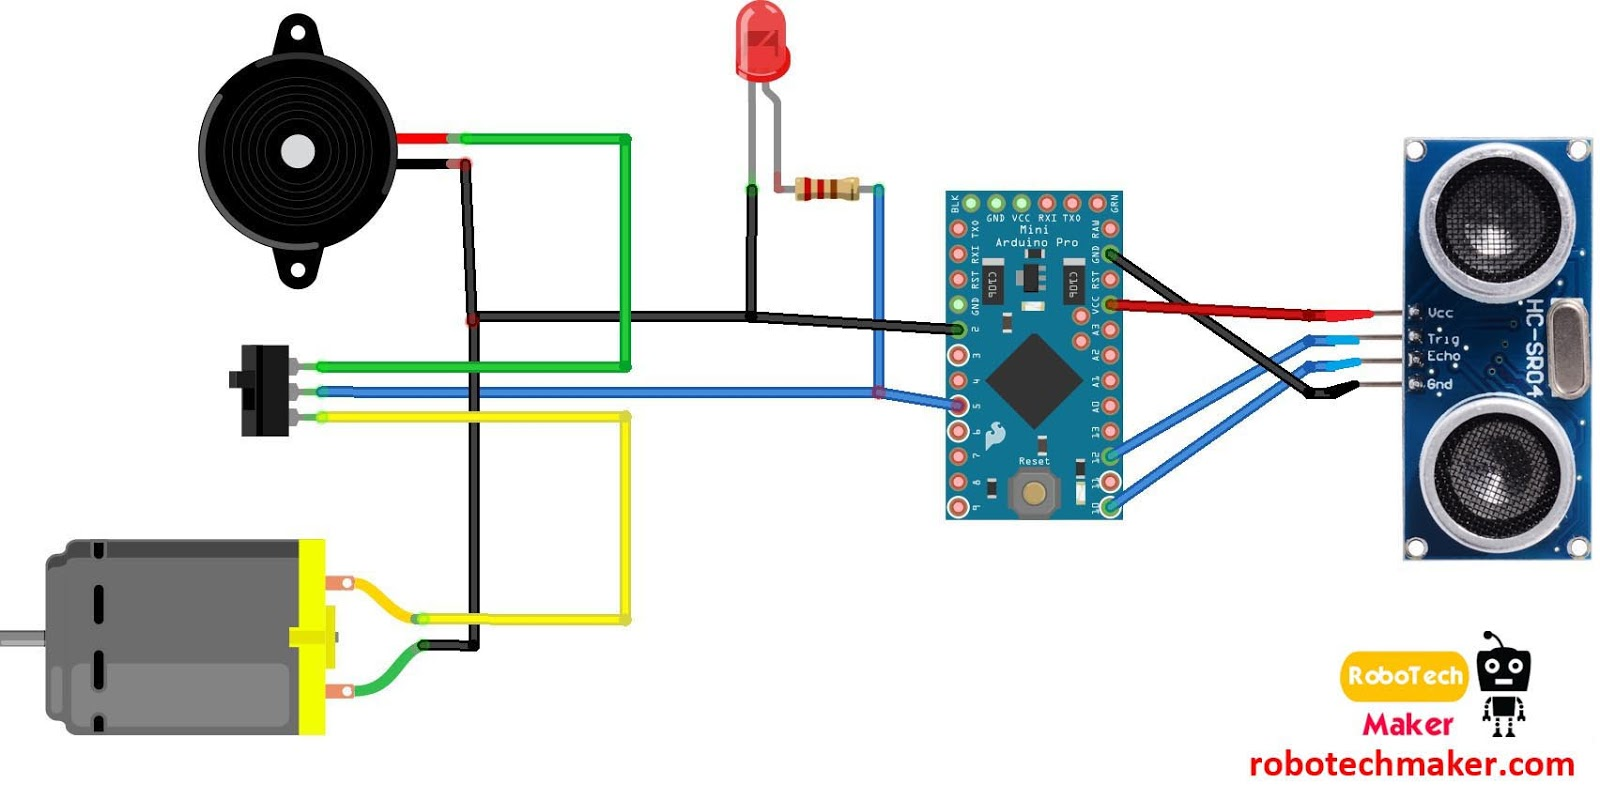 Robotech Maker Third Eye For The Blind Arduino Wiring Diagram Circuit